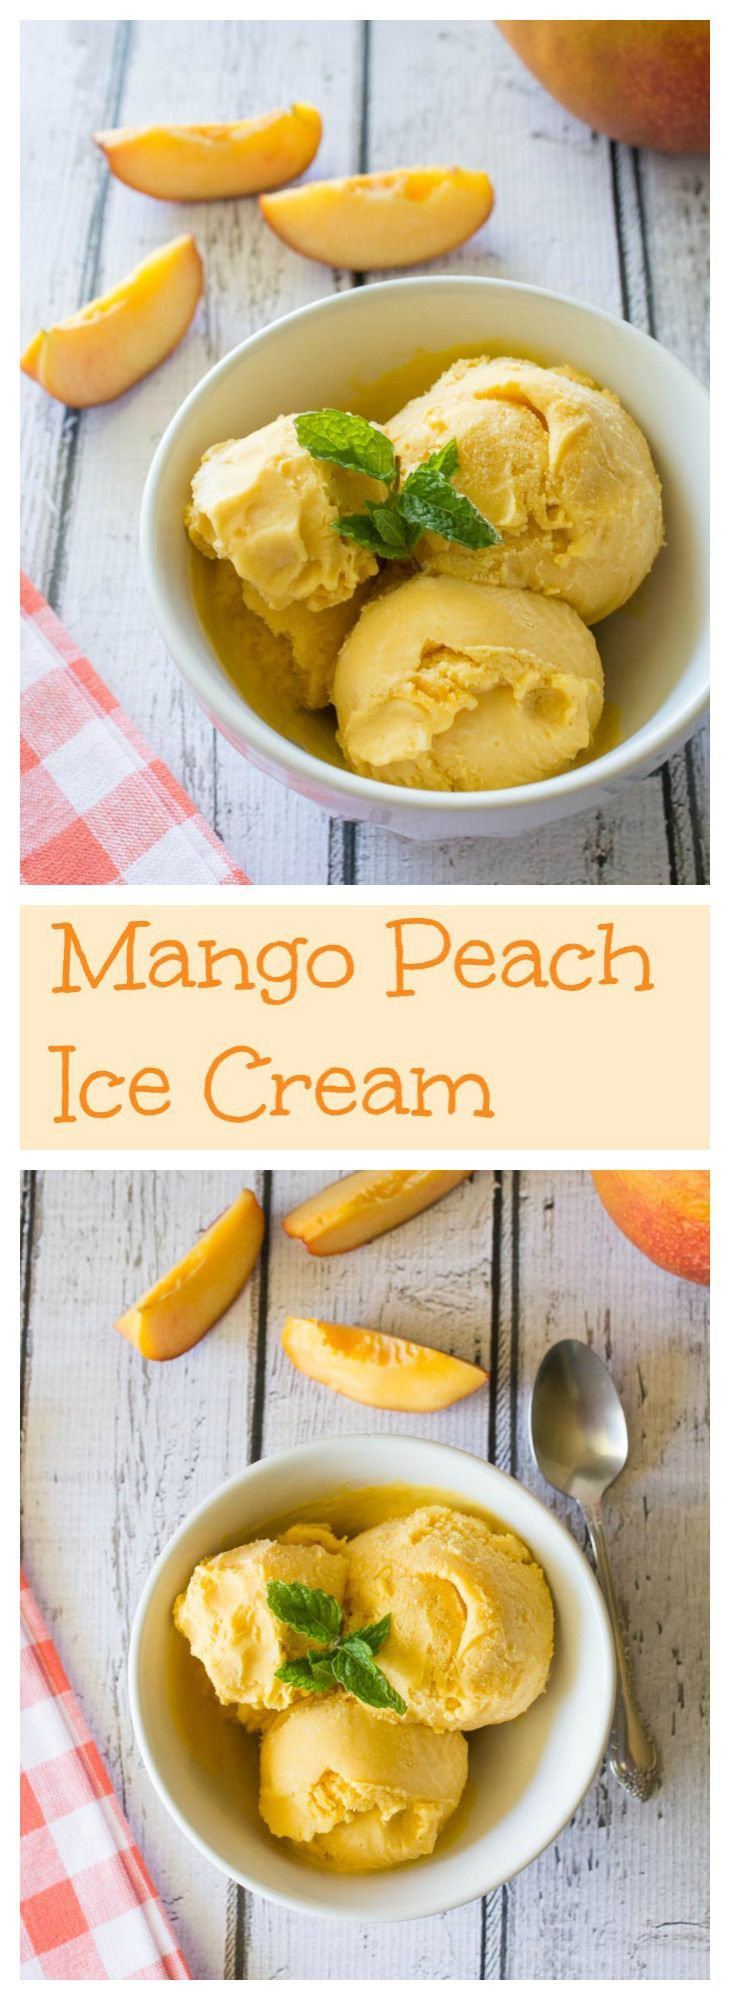 Mango and Peach pair so perfectly together; especially in this delicious ice cream! So easy to make and ridiculously good.